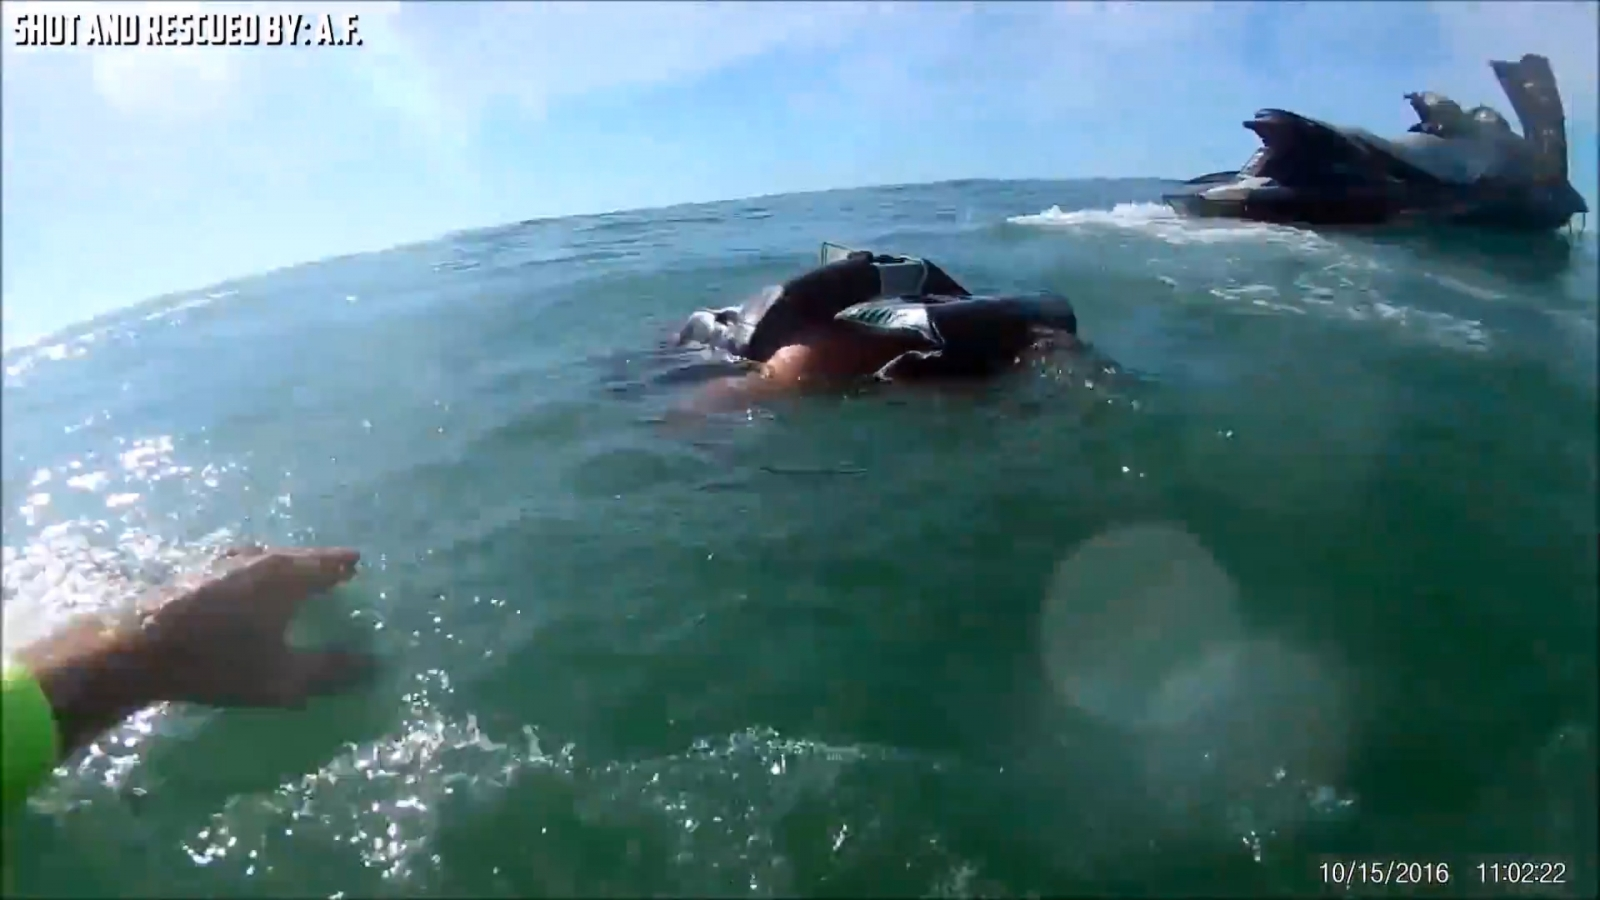 Dramatic video shows off-duty policeman rescue man thrown from jet ski